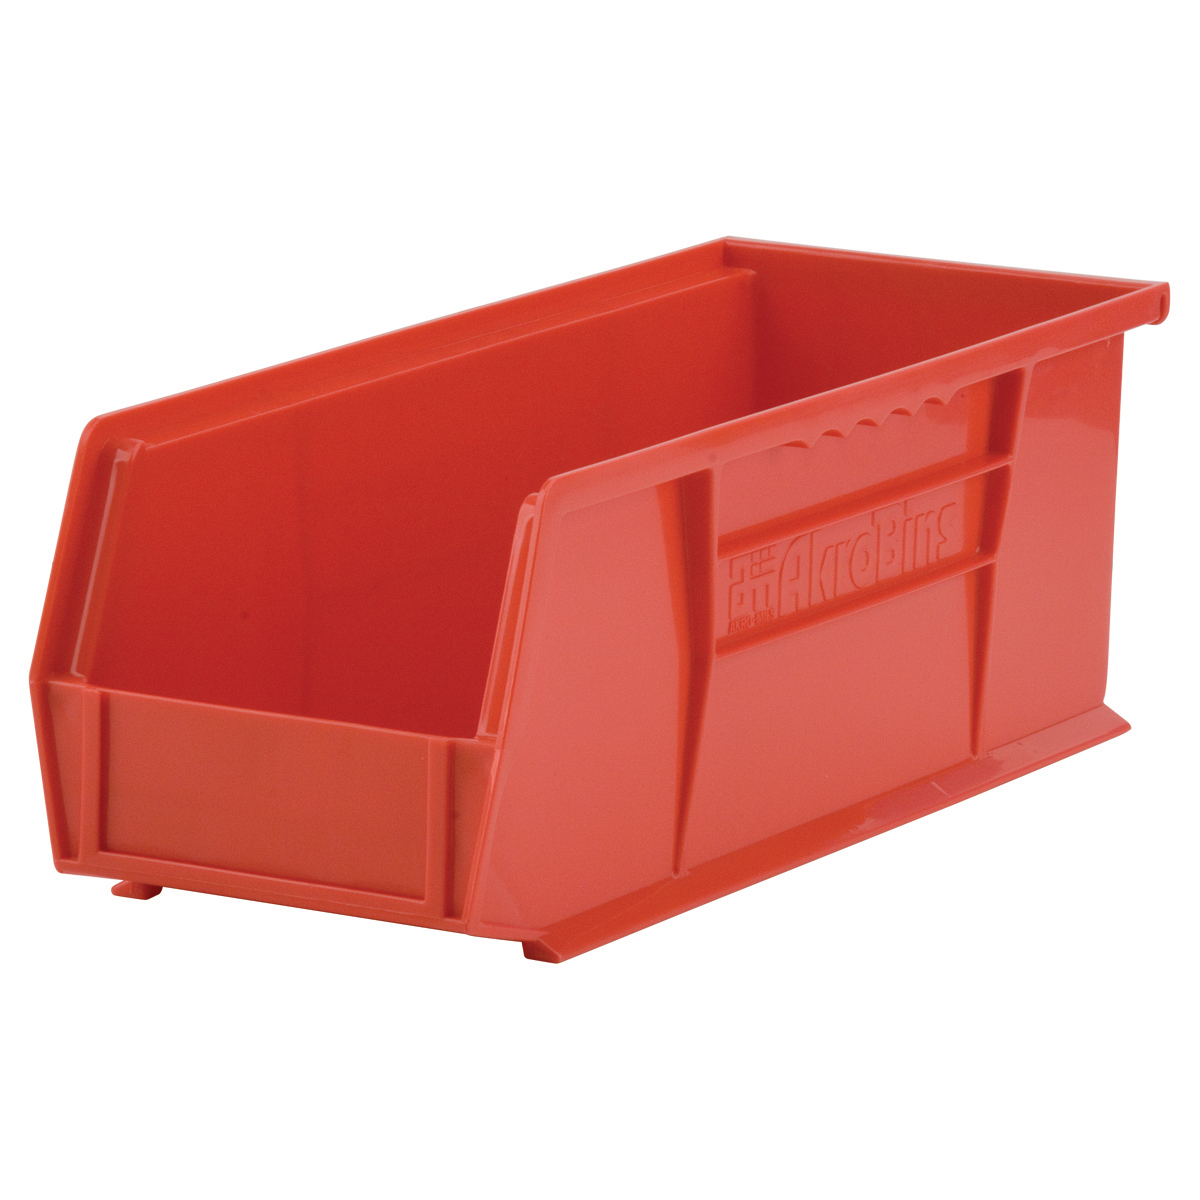 AkroBin 14-3/4 x 5-1/2 x 5, Red (30234RED).  This item sold in carton quantities of 12.